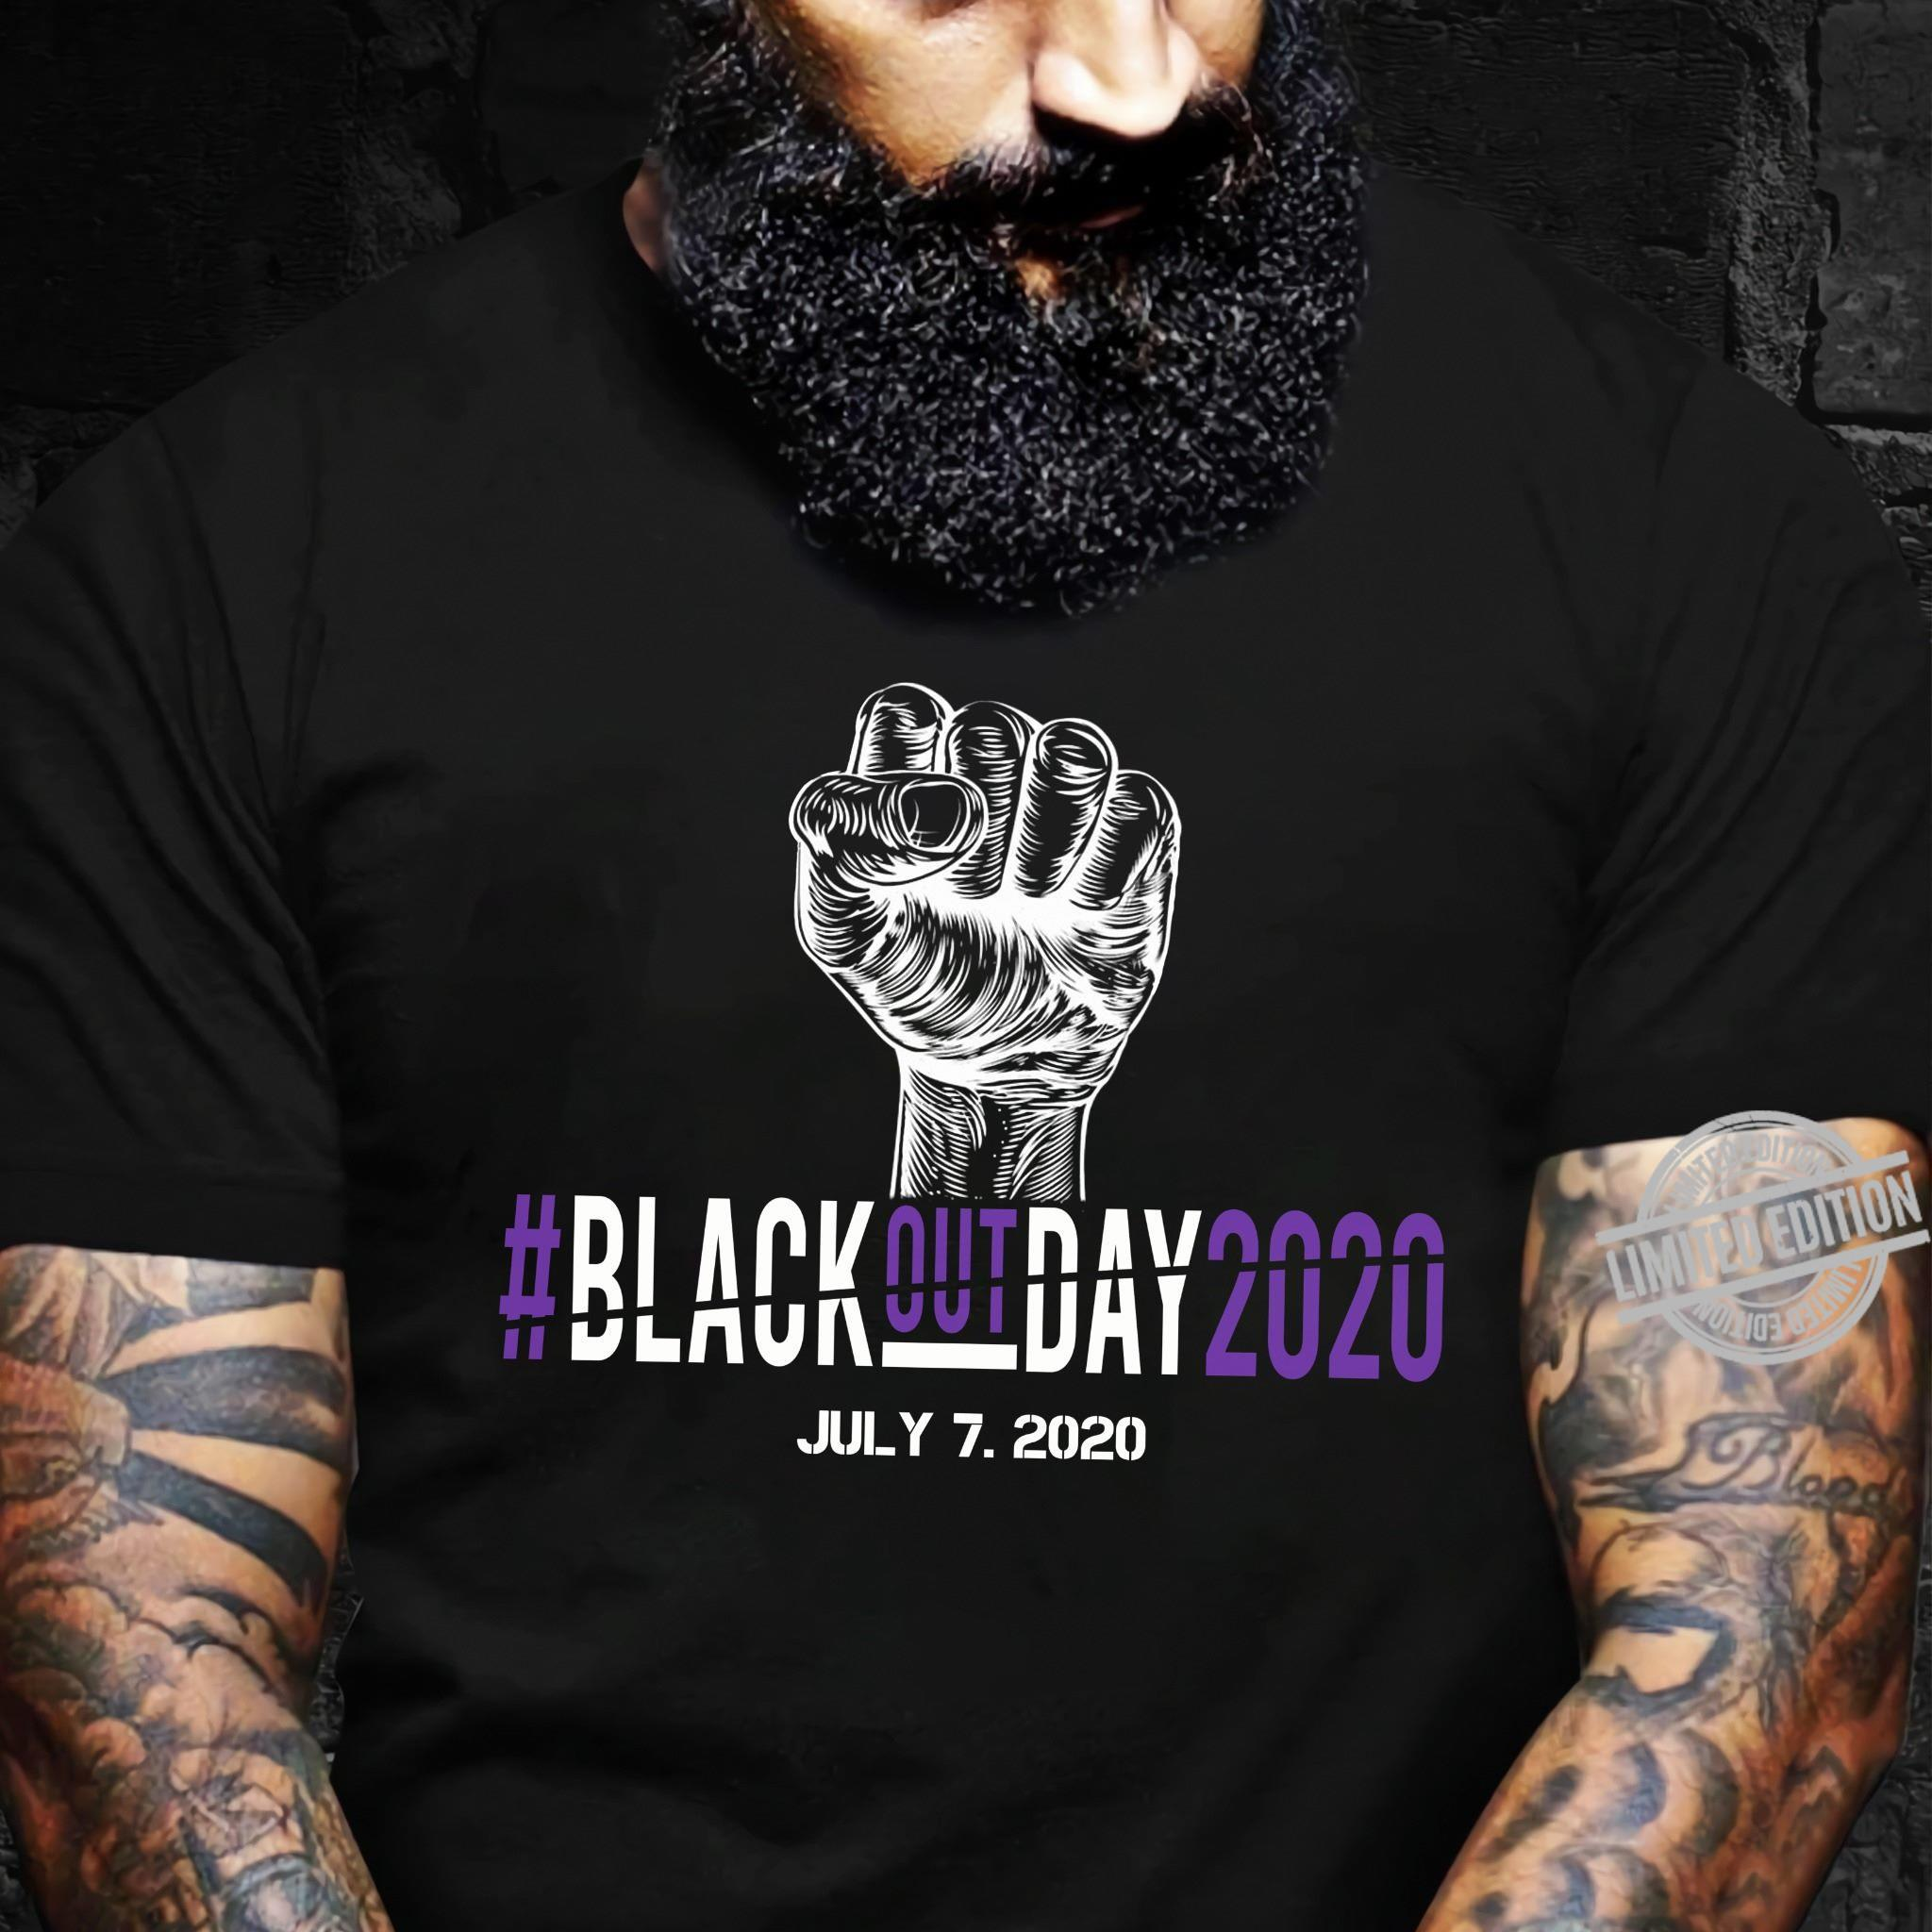 Black Out Day 2020 July 7 2020 Shirt